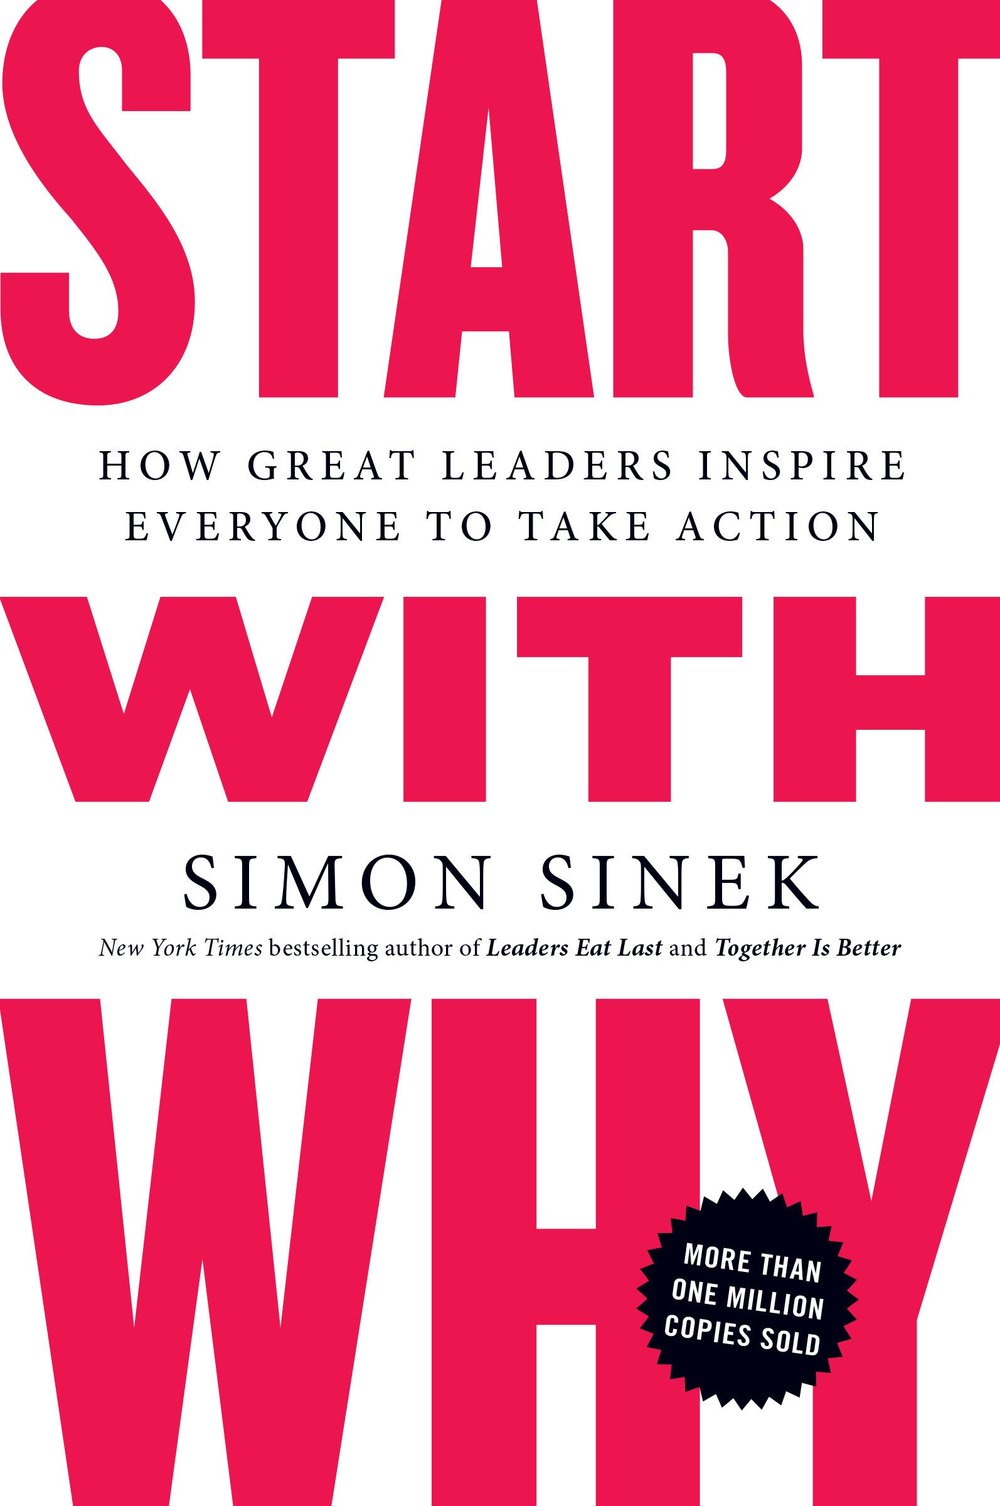 Start With Why - By Simon SinekThis book has been on my reading list for a while. I first learned of Simon Sinek in a leadership seminar in which we watched his 99U talk, Why Leaders Eat Last. After the seminar, I went home and watched his two TED talks, which I highly recommend.Description:Start With Why shows that the leaders who've had the greatest influence in the world all think, act, and communicate the same way -- and it's the opposite of what everyone else does. Sinek calls this powerful idea The Golden Circle, and it provides a framework upon which organizations can be built, movements can be led, and people can be inspired. And it all starts with WHY.